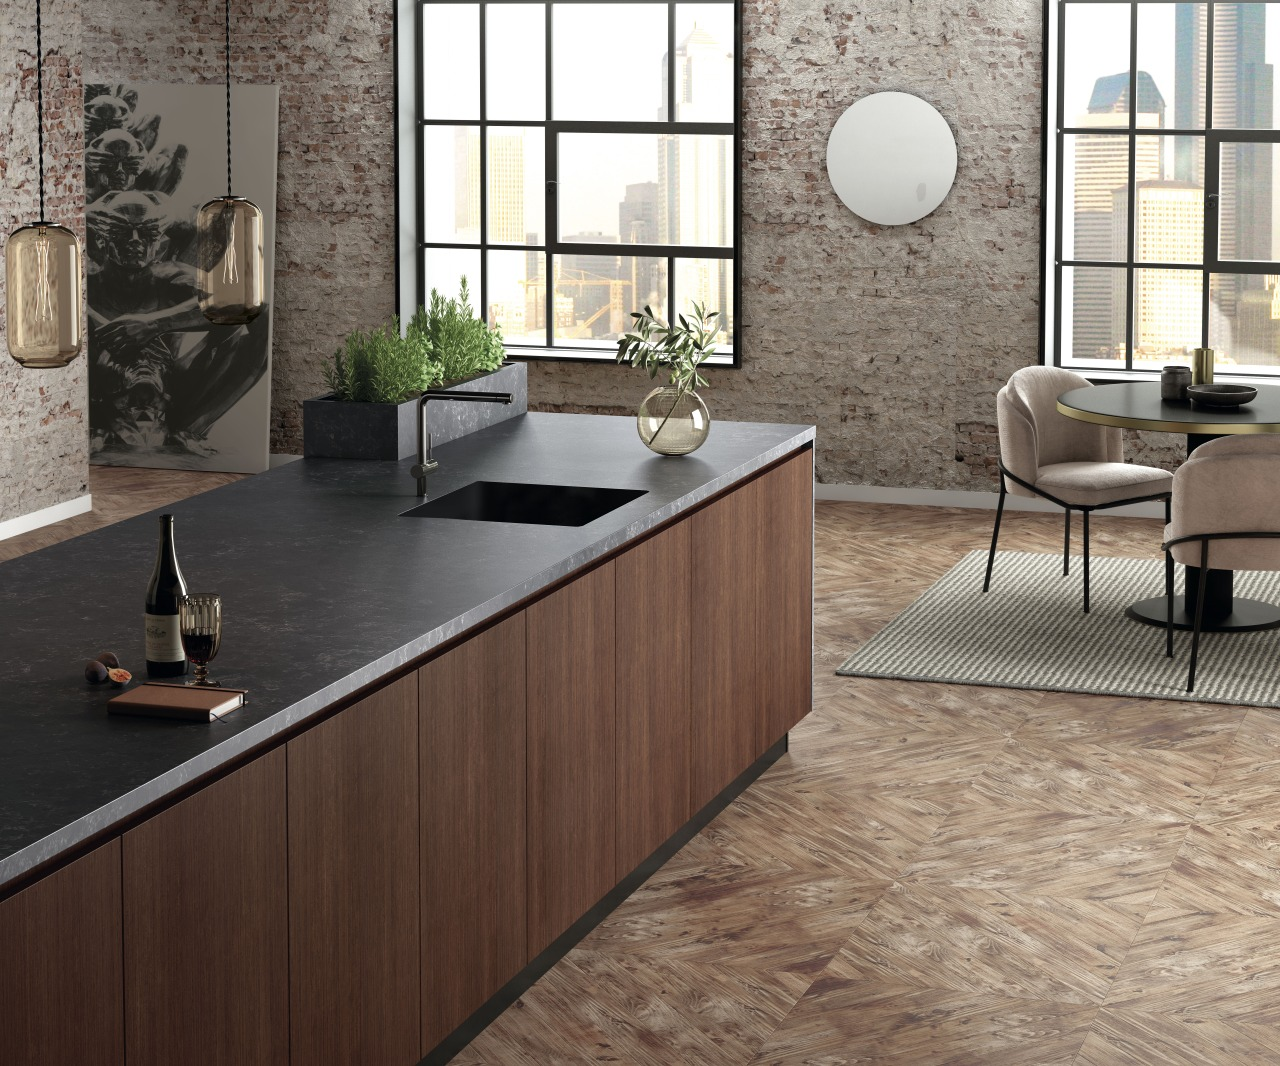 Silestone Corktown is the mostintense, solid and deep